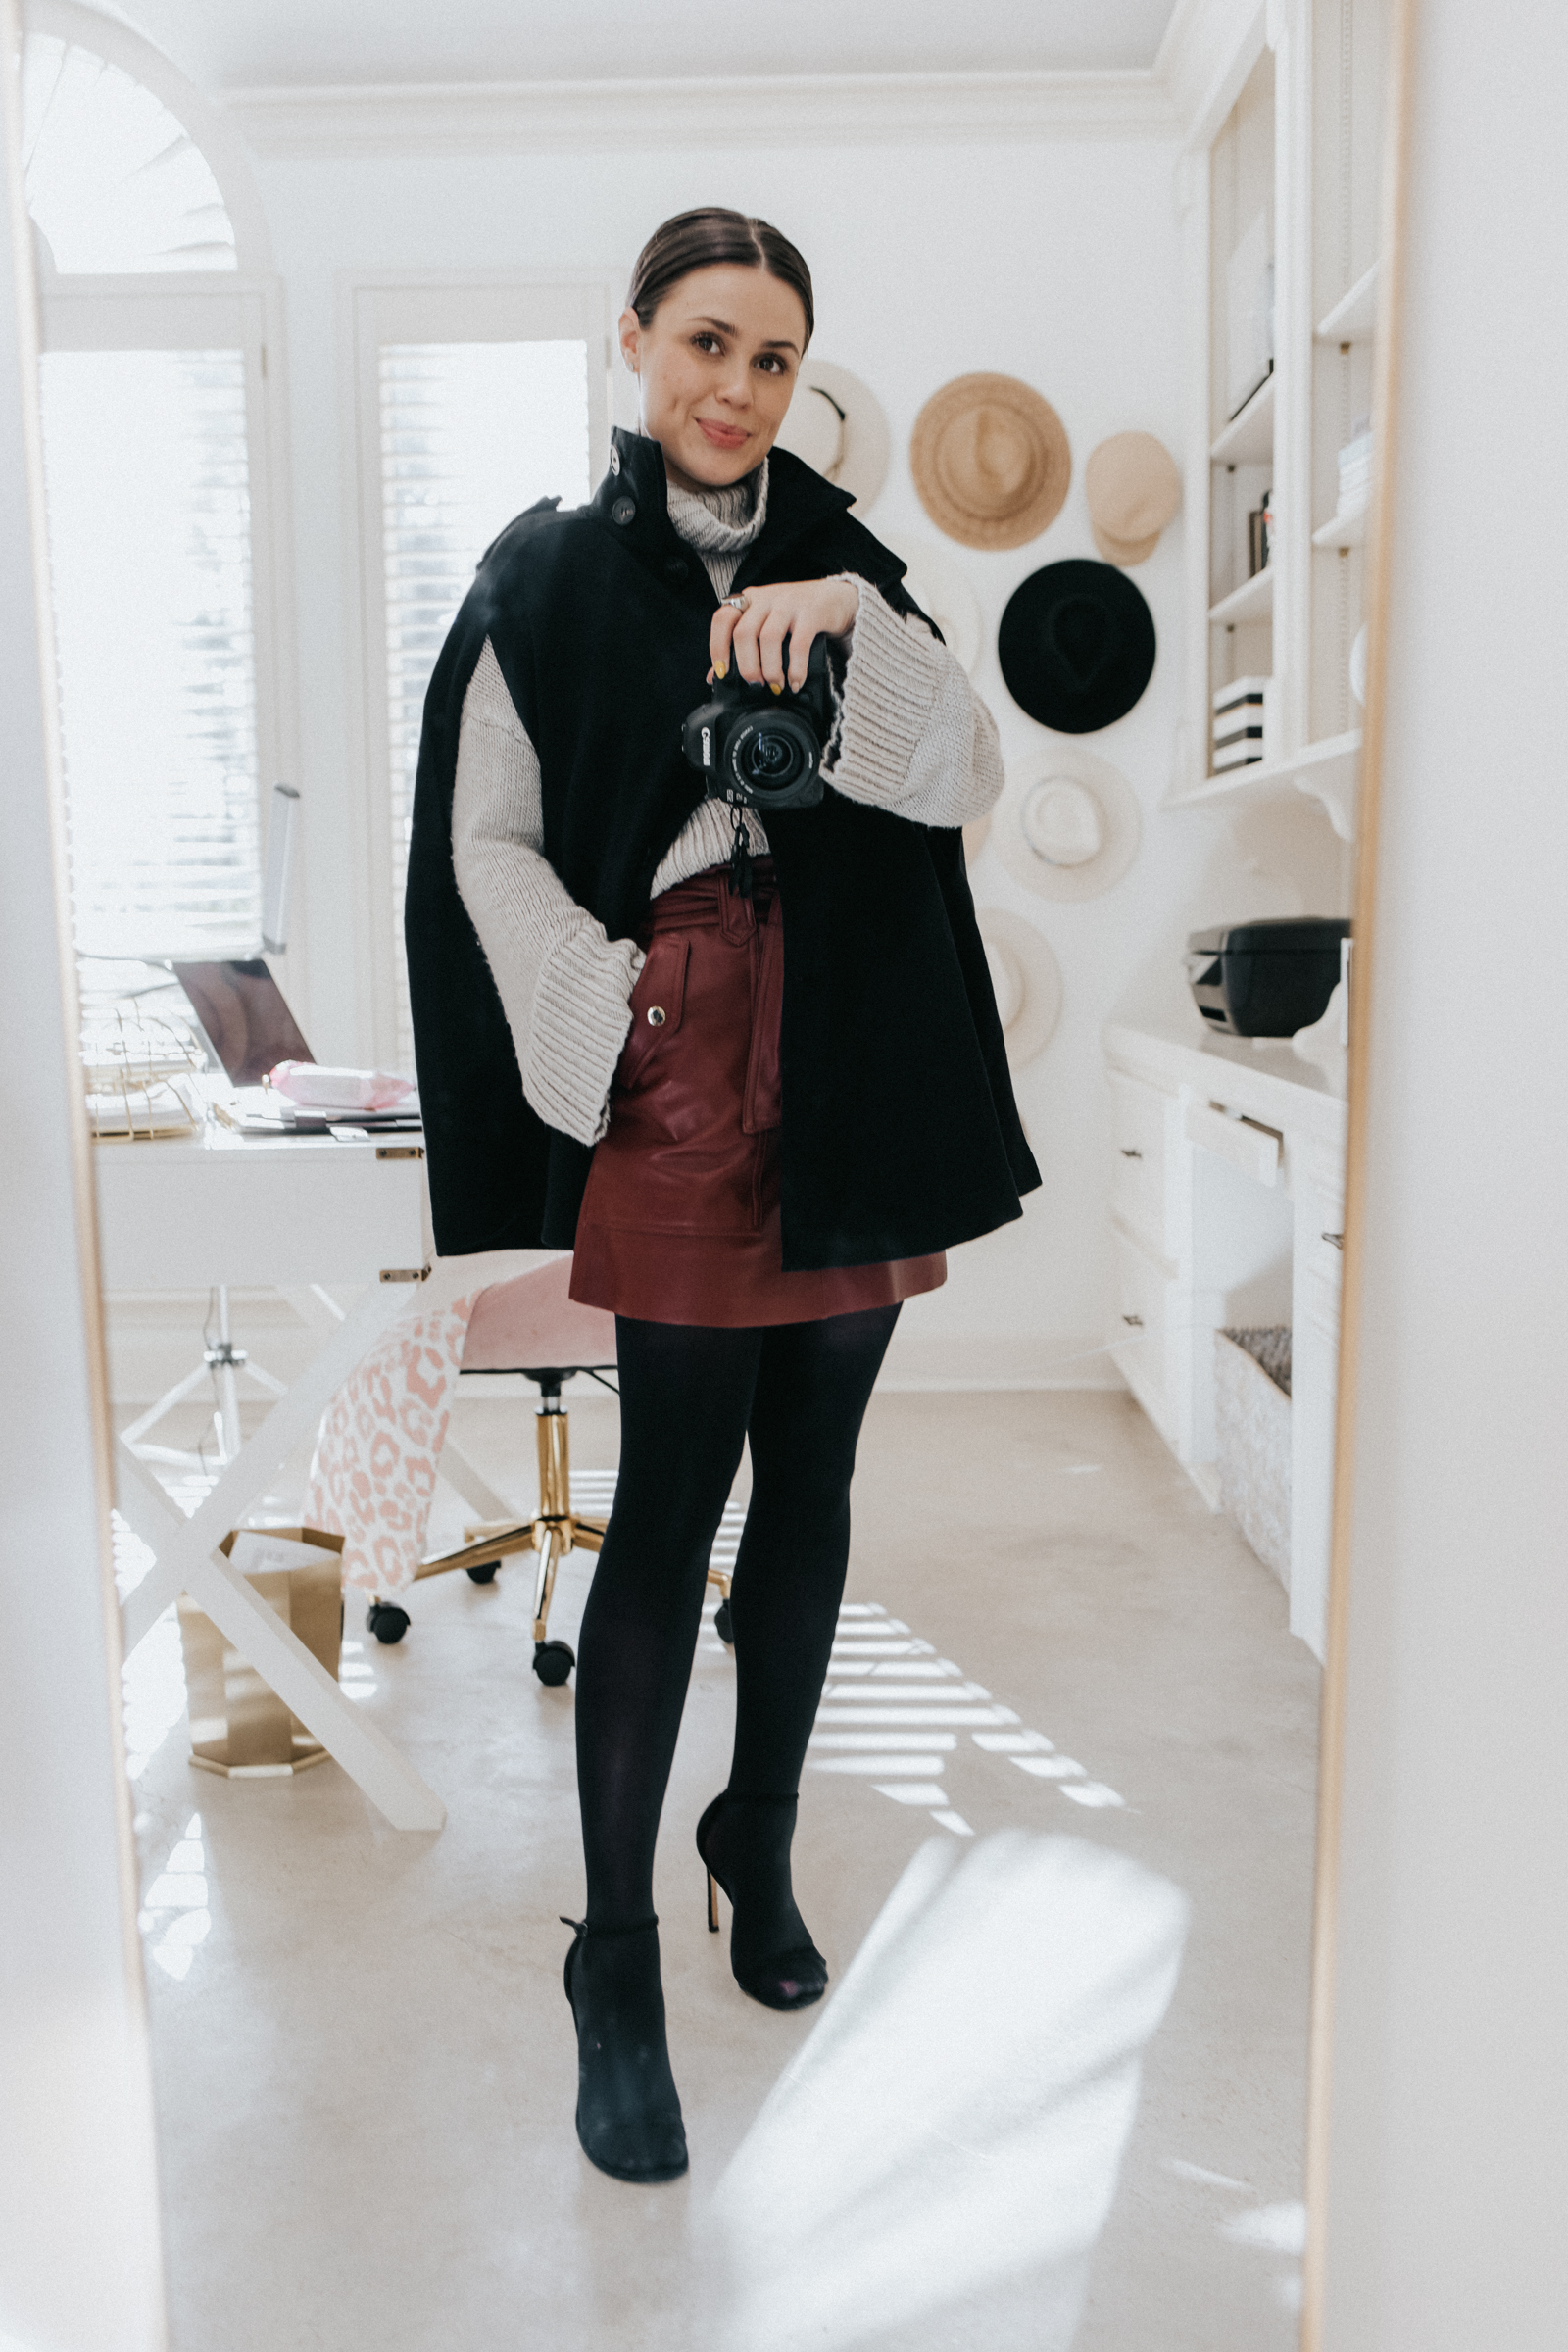 elly brown styles a winter cape coat from Zara with a faux leather skirt, stockings and sandals